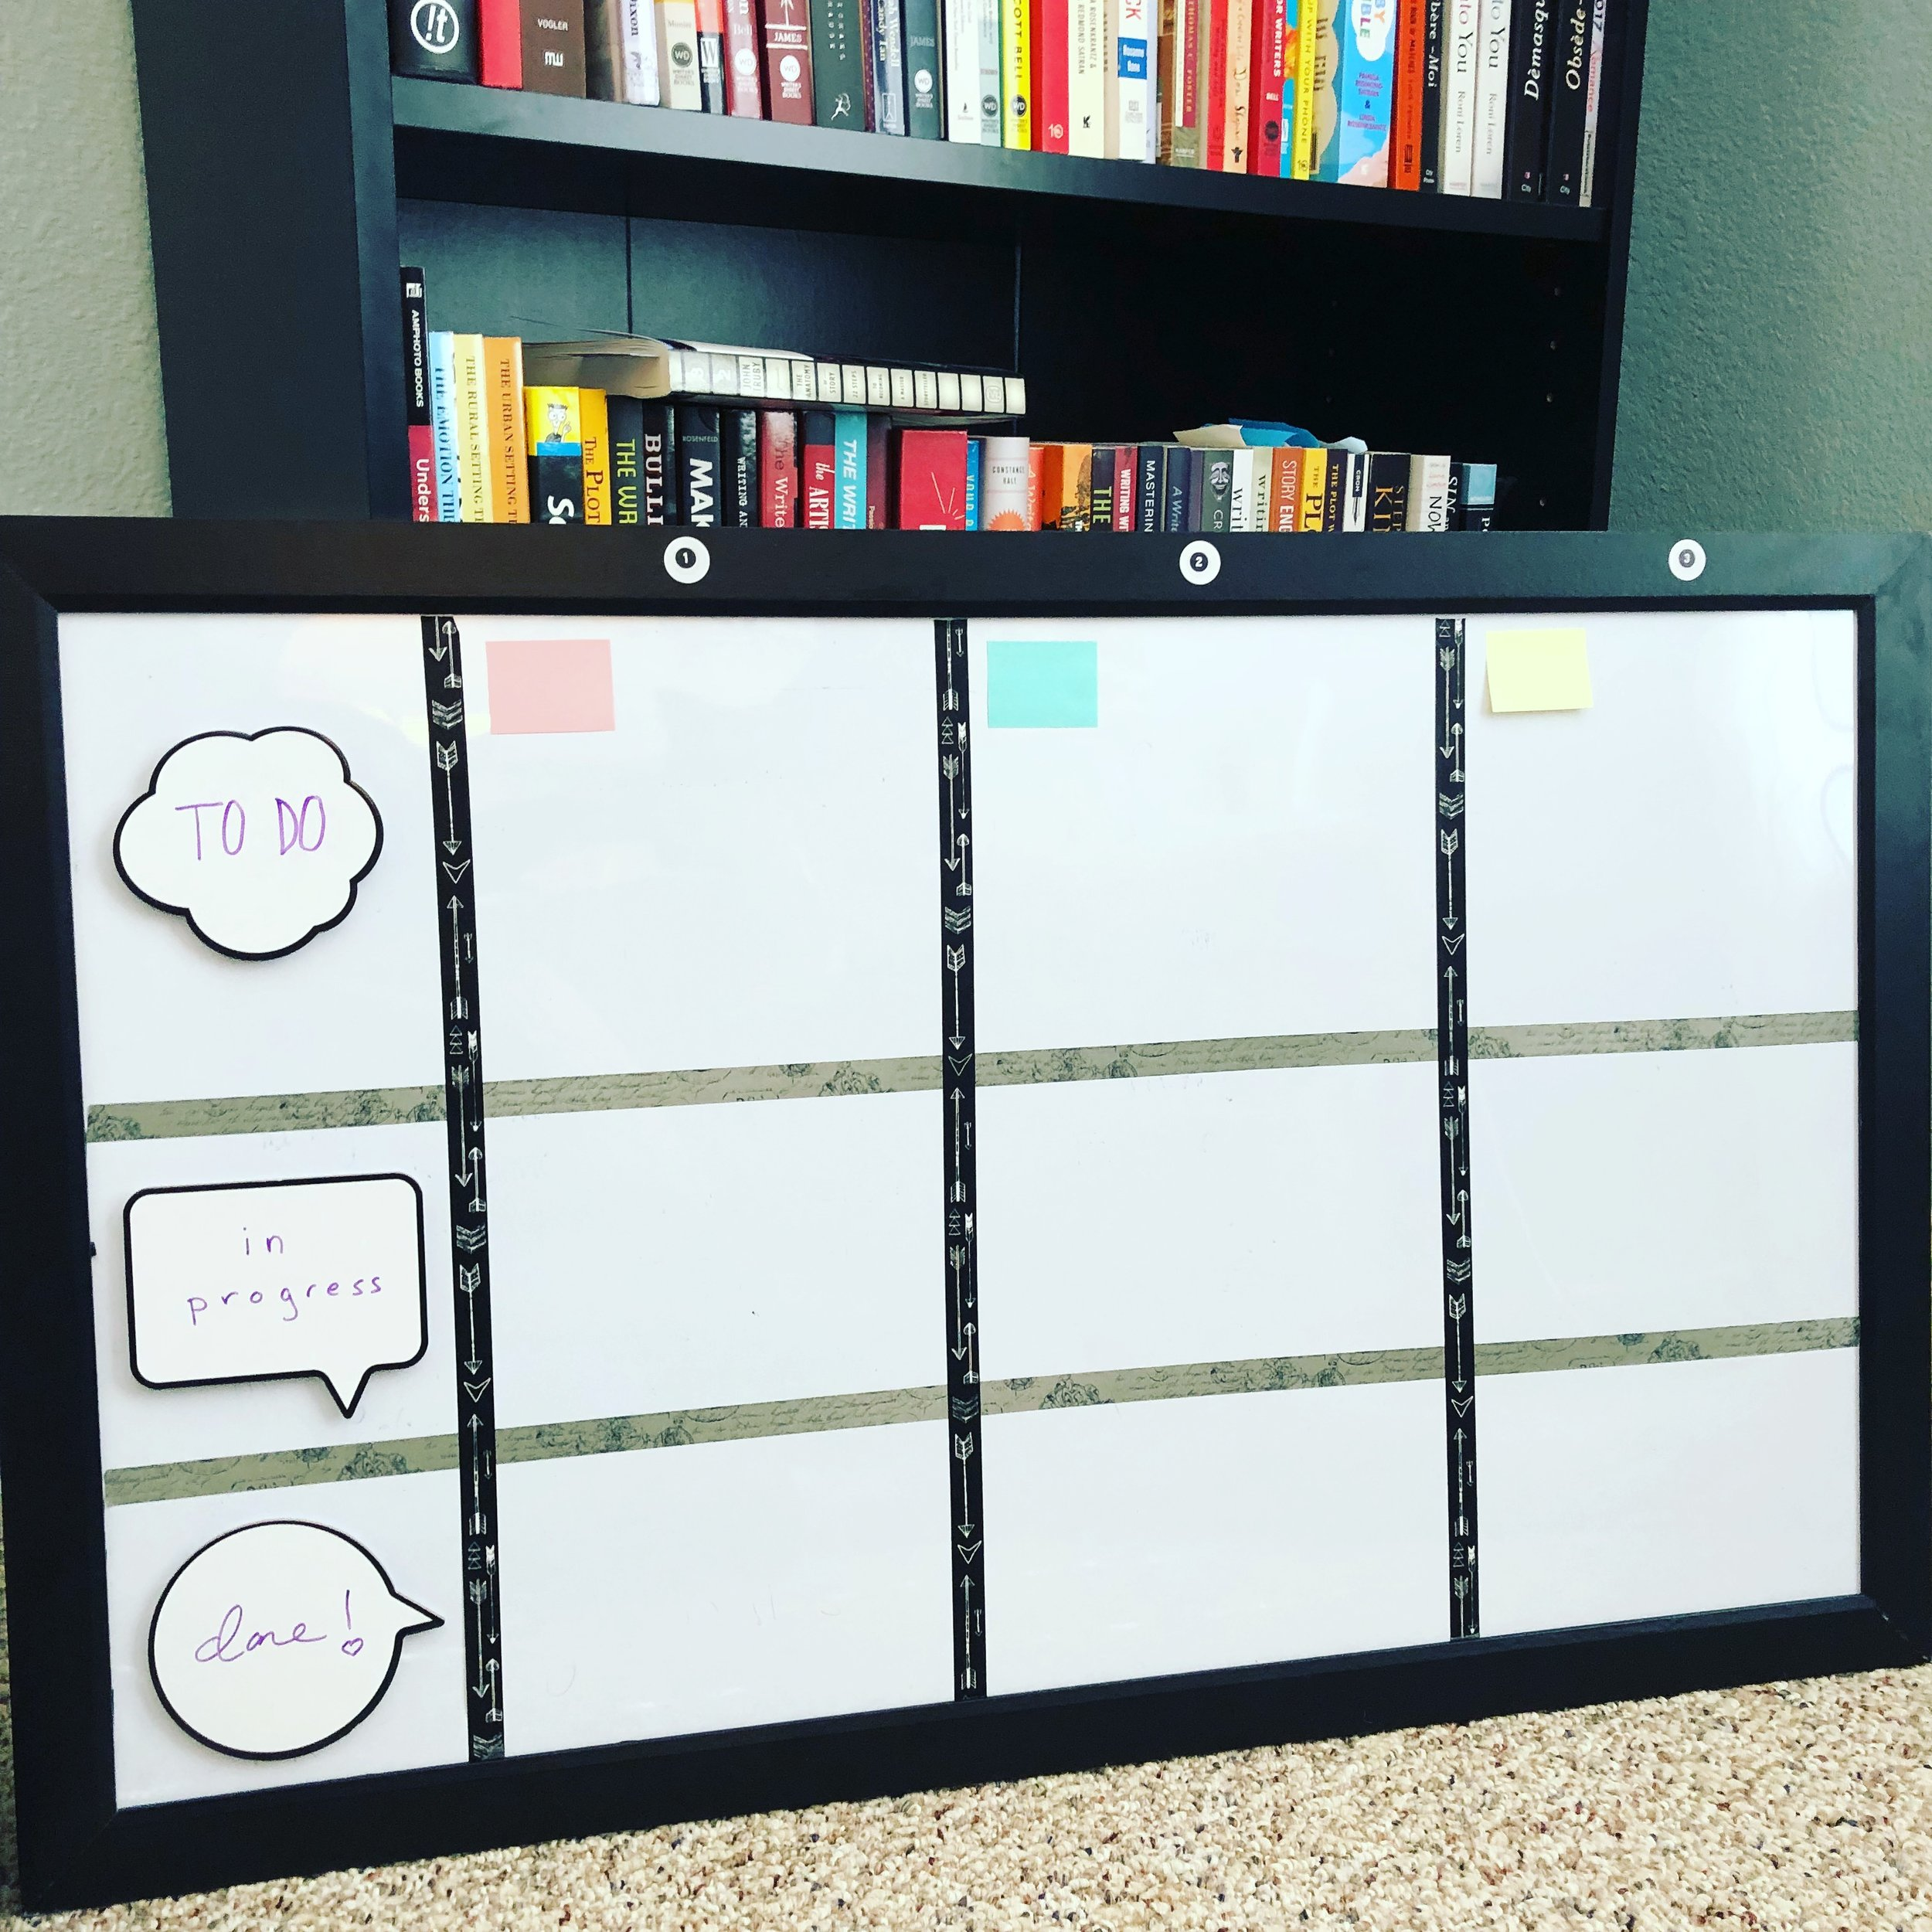 I have this fully filled with post-its now but this is how it looked when I first made it. This is focused strictly on the three main goals of my 90-day plan.